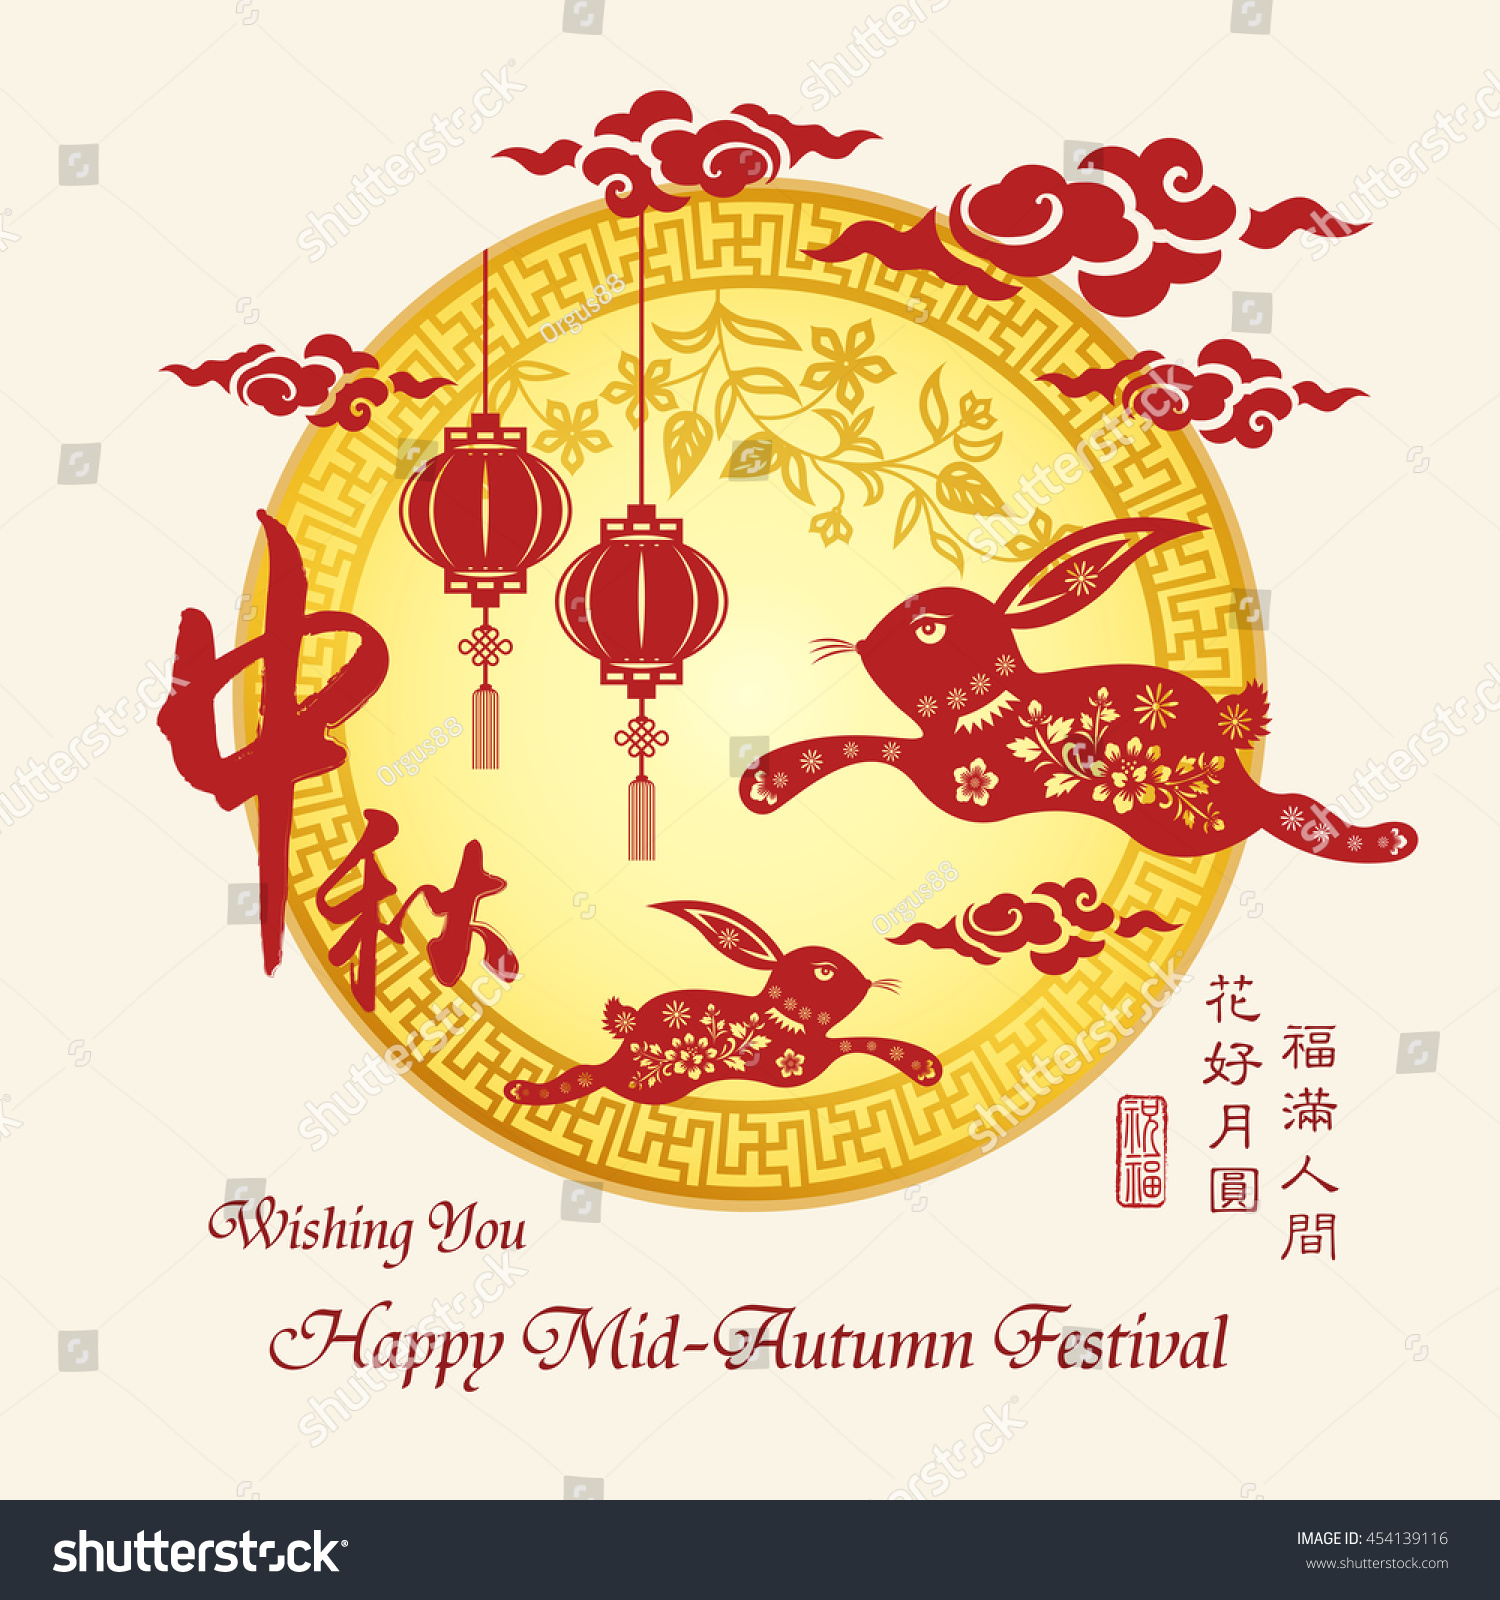 Chinese Mid Autumn Festival Graphic Design Chinese